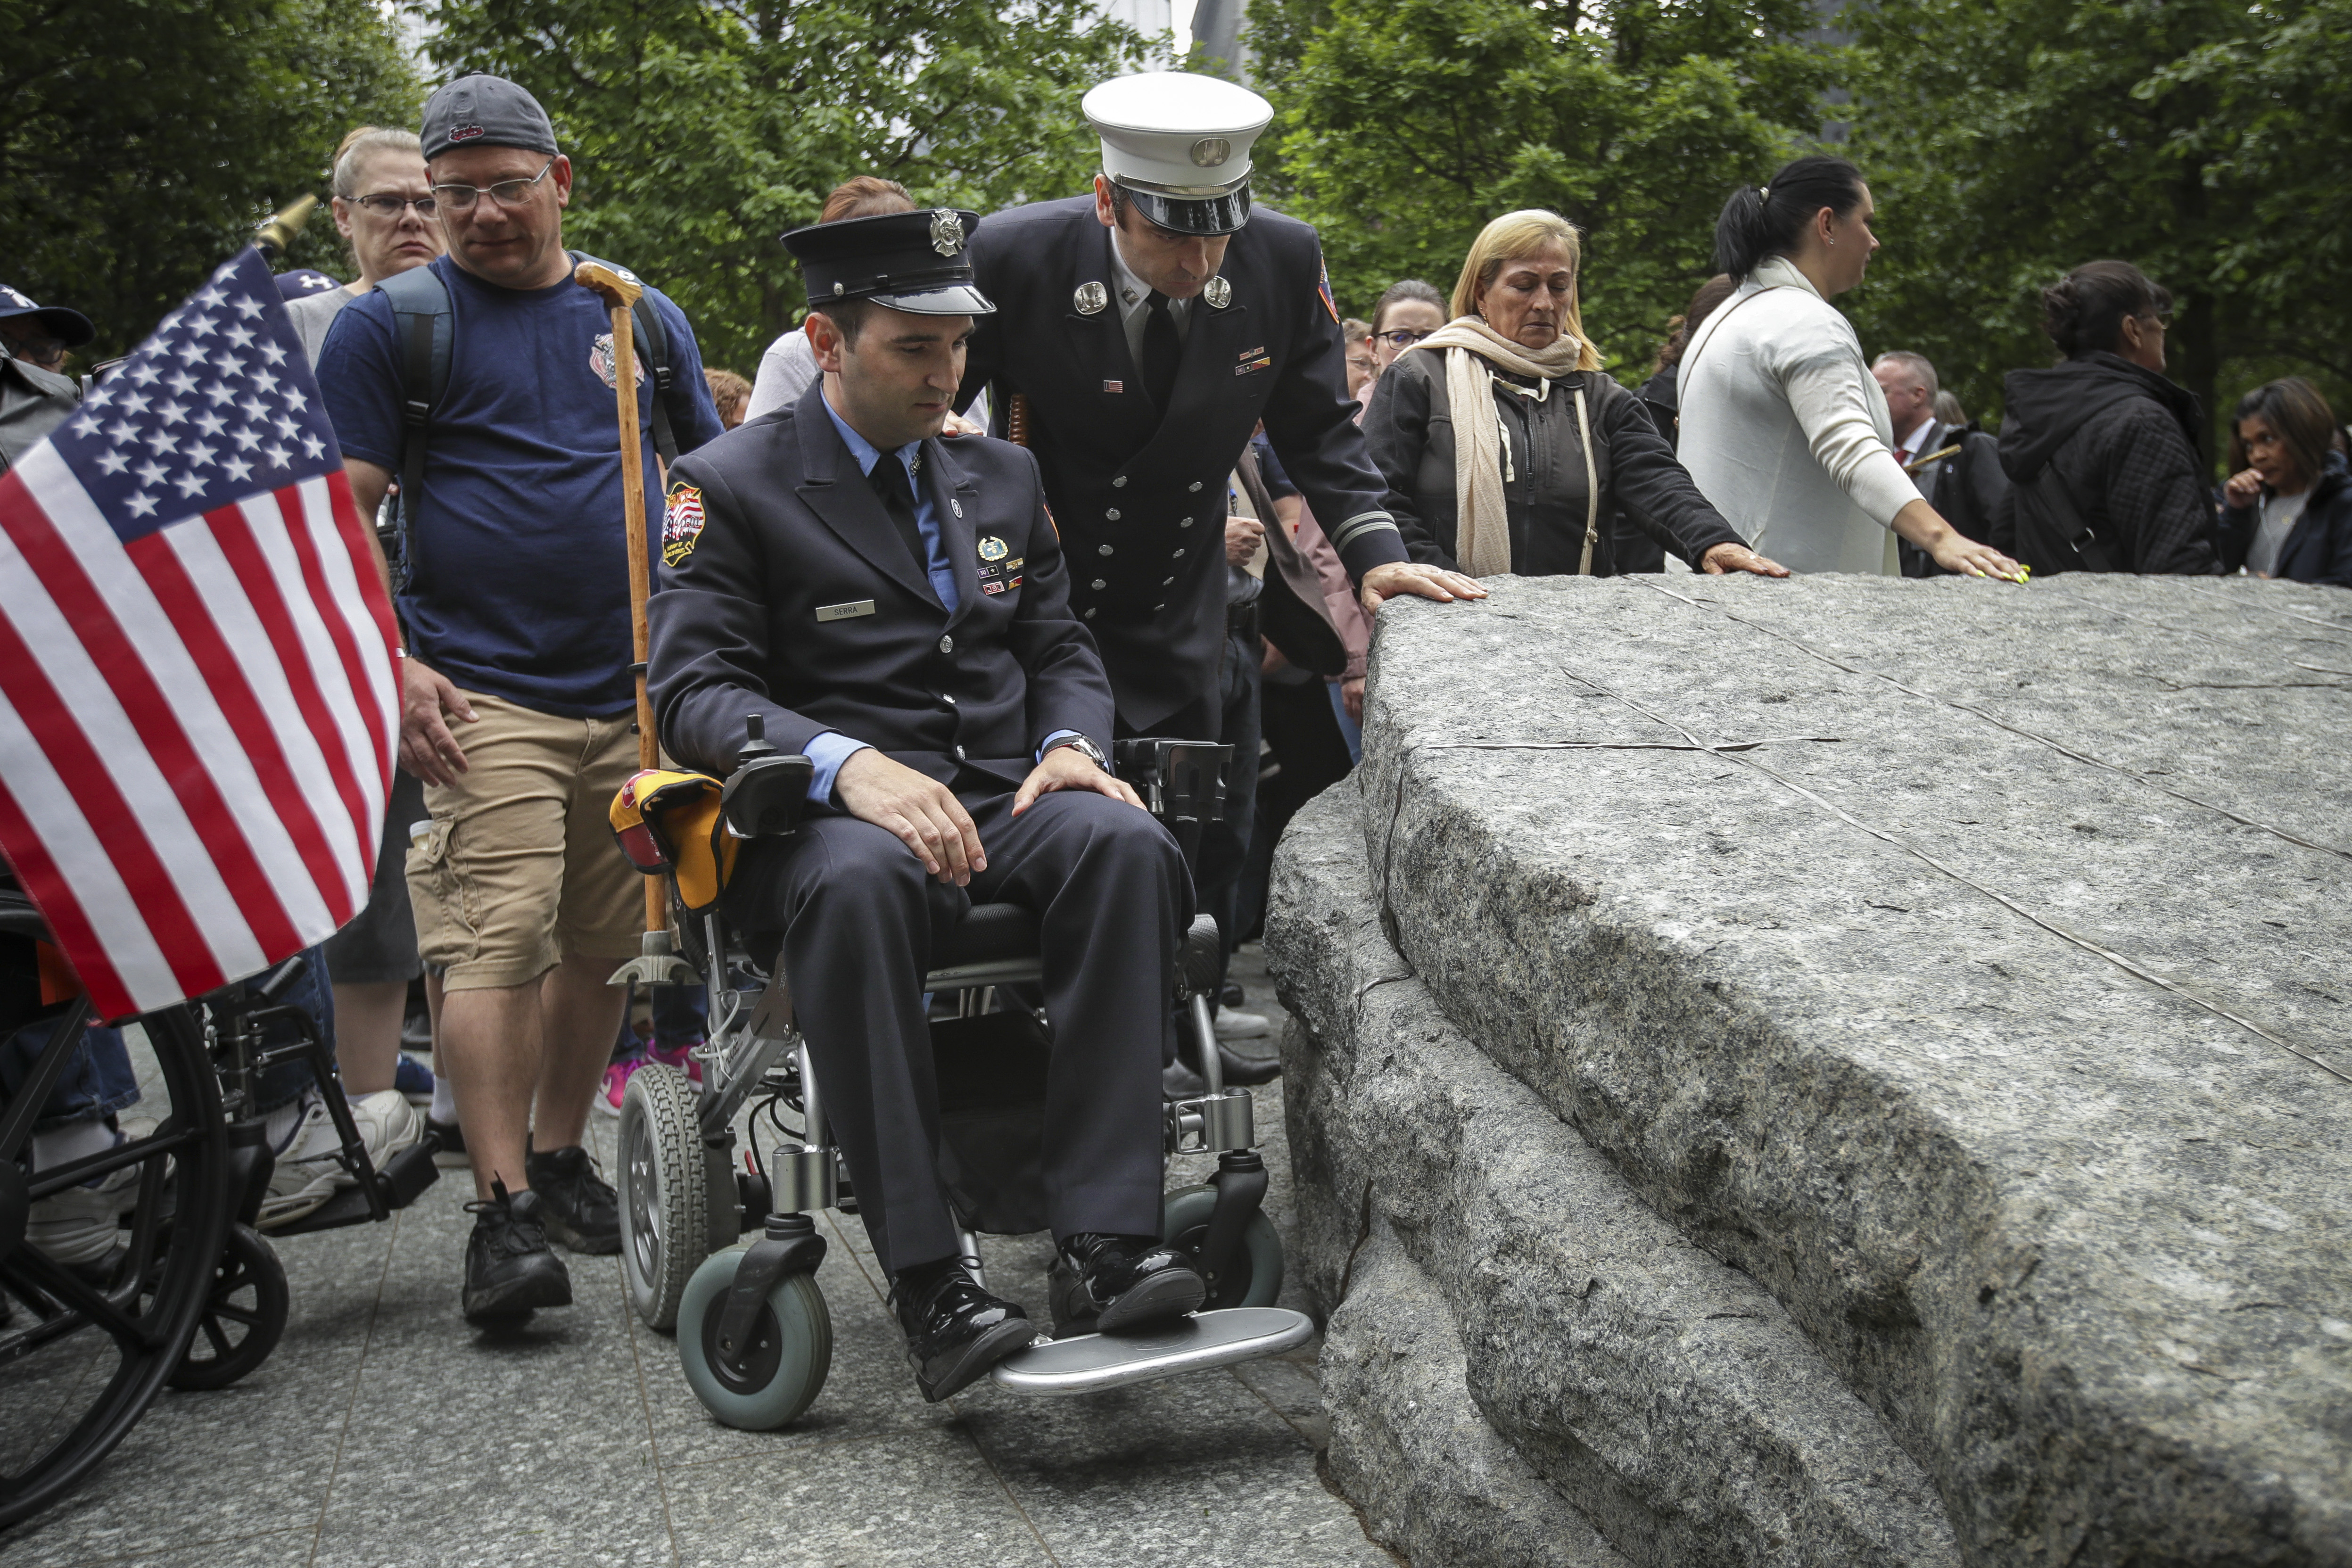 NEW YORK, NY - MAY 30: Retired FDNY firefighter and 9/11 first responder Rob Serra pauses at one of the stone monoliths following the dedication ceremony for the new 9/11 Memorial Glade at the National September 11 Memorial, May 30, 2019 in New York City. The 9/11 Memorial Glade honors the first responders who are sick or have died from exposure to toxins in the aftermath of the attacks and recovery efforts. The signature piece of the memorial are six stone monoliths that are inlaid with World Trade Center steel. (Photo by Drew Angerer/Getty Images)